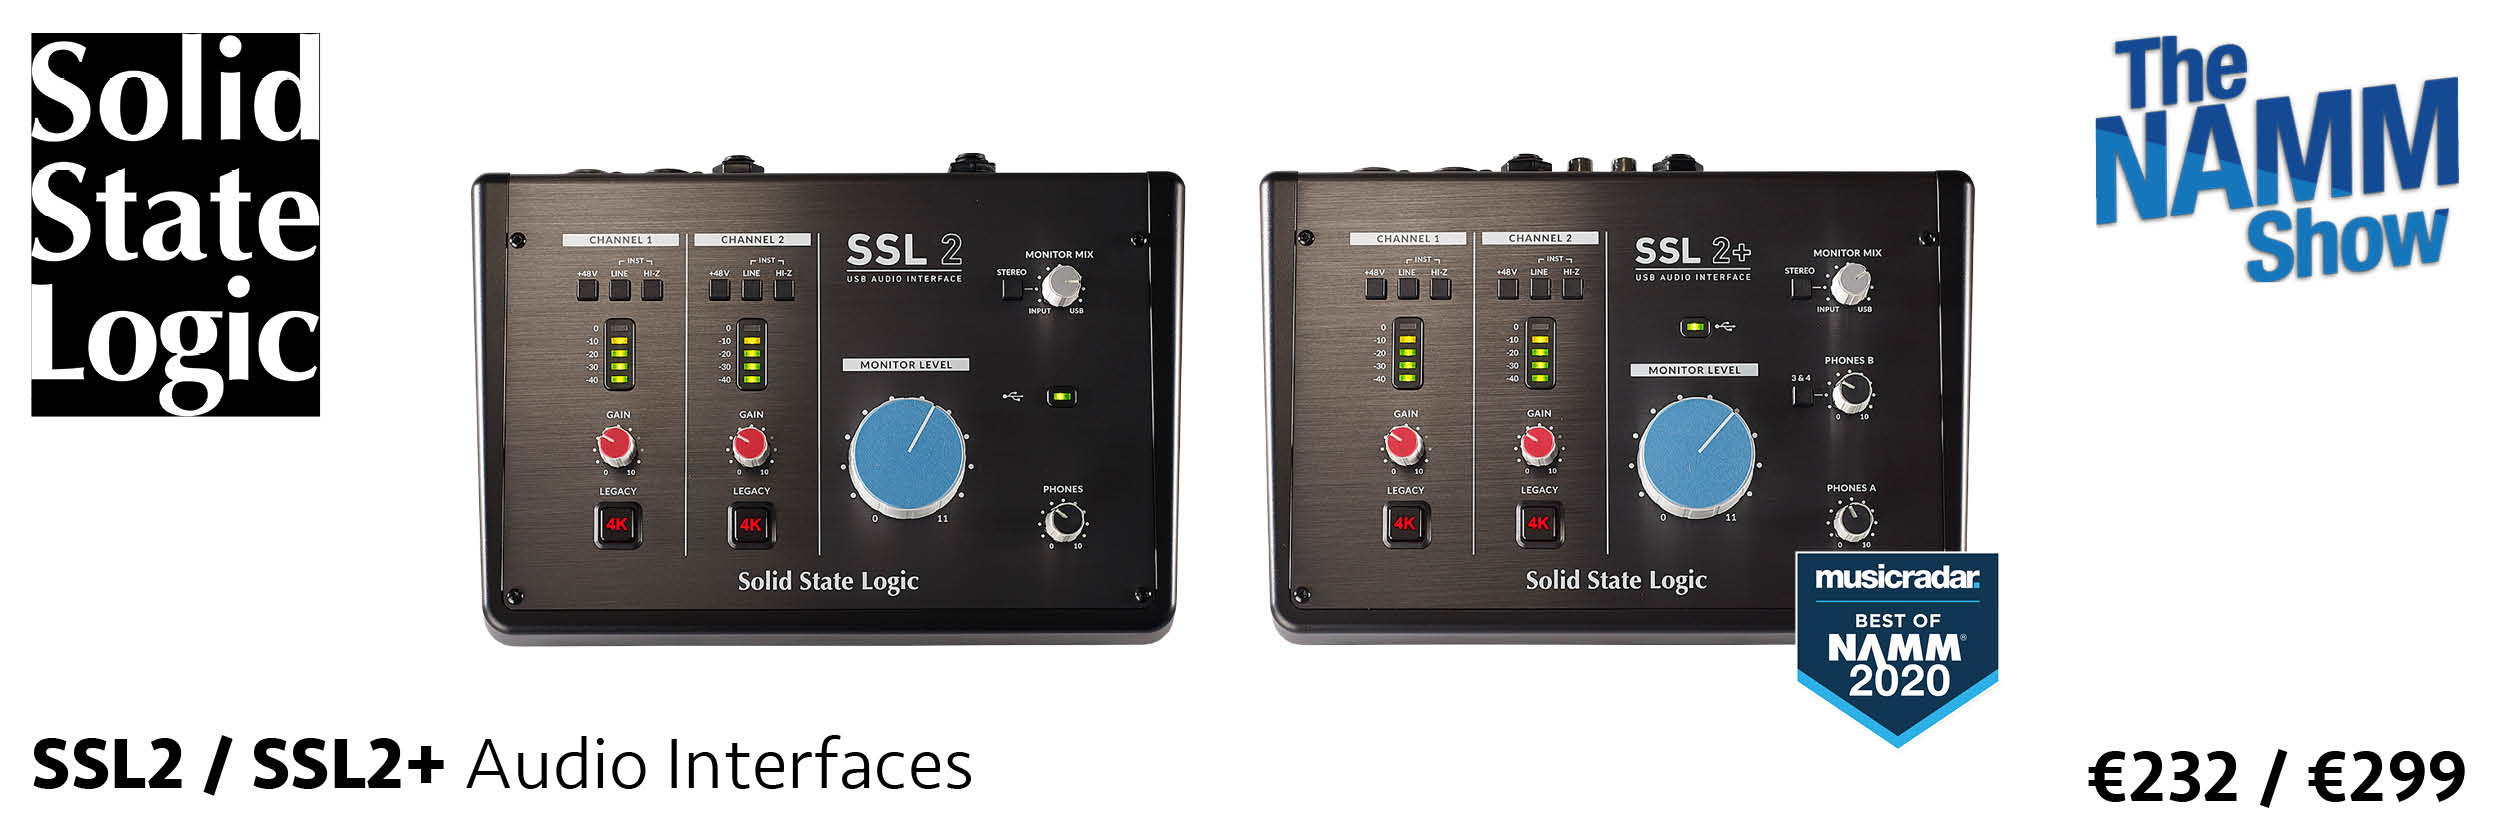 Solid State Logic SSL2 / SSL2+